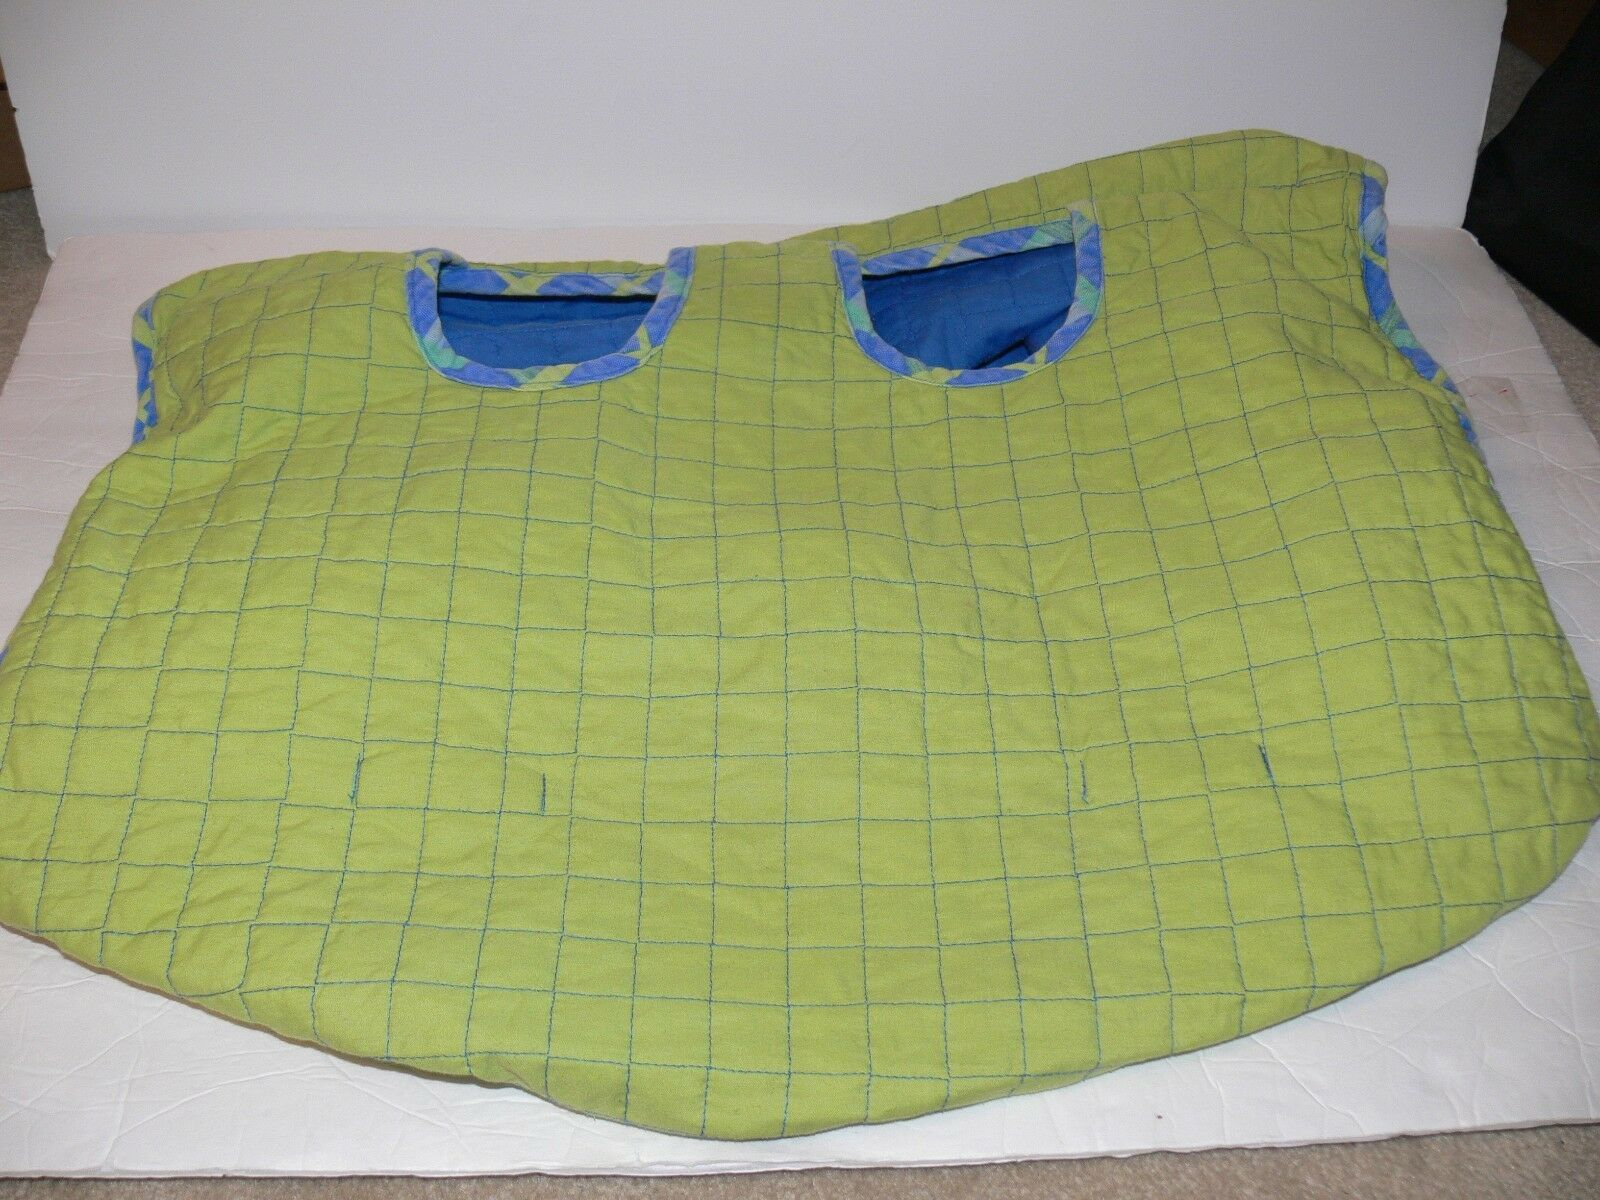 Primary image for Infant Baby Revisible shopping cart cover Blue & Green kh